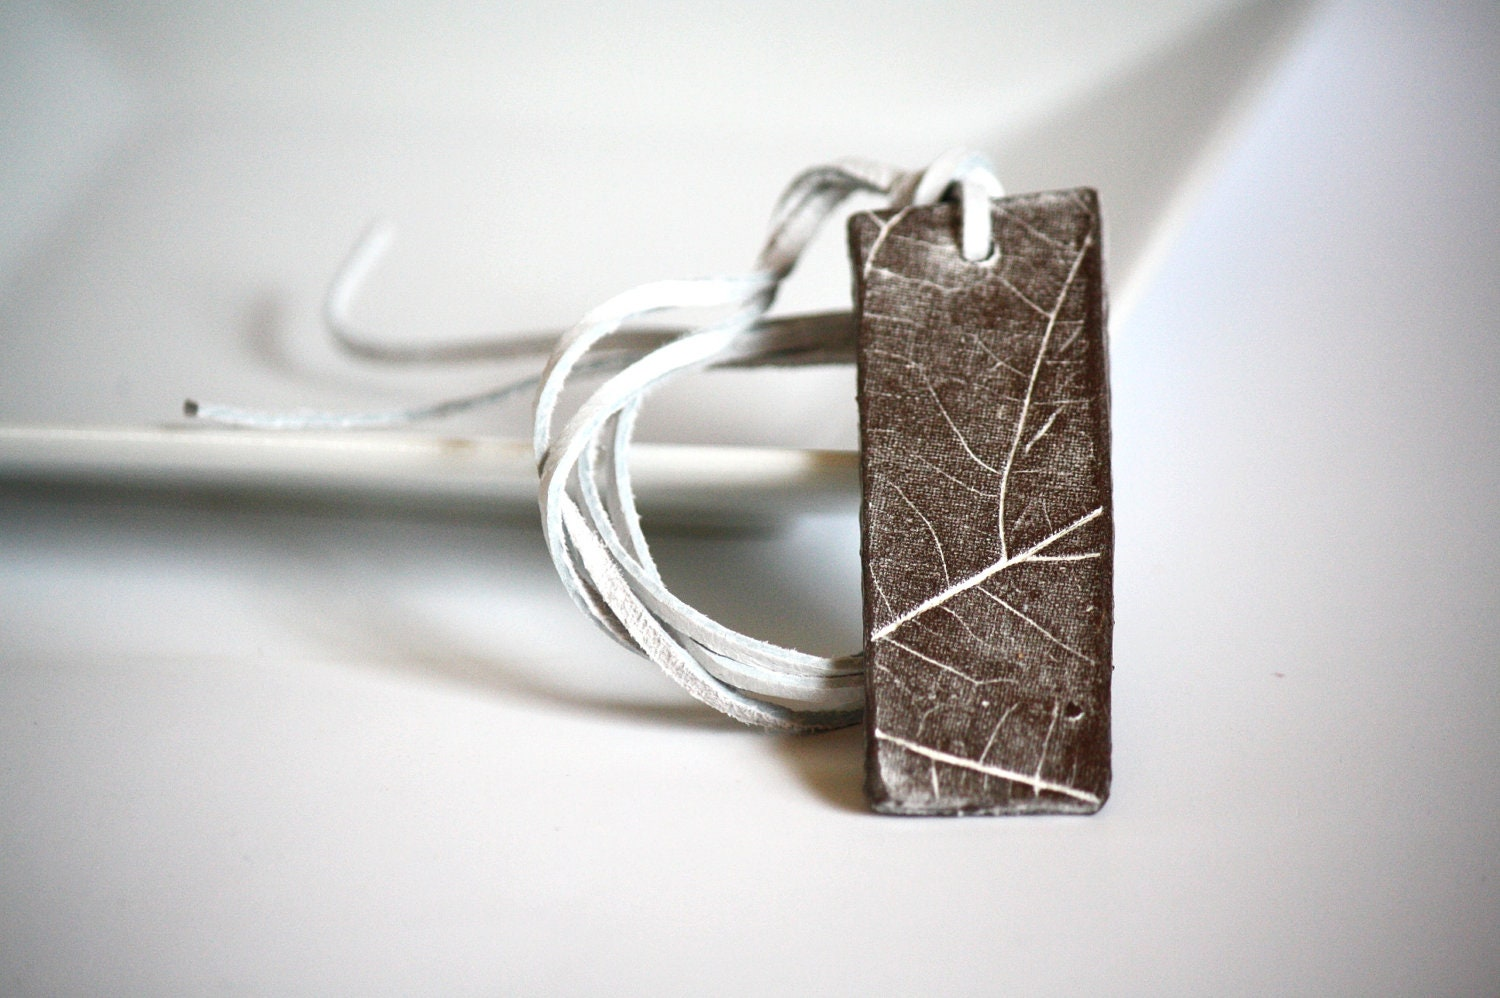 II Chocolate brown snow white, leaf veins hand pressed ceramic clay pendant necklace, organic, natural, ooak - CatHot